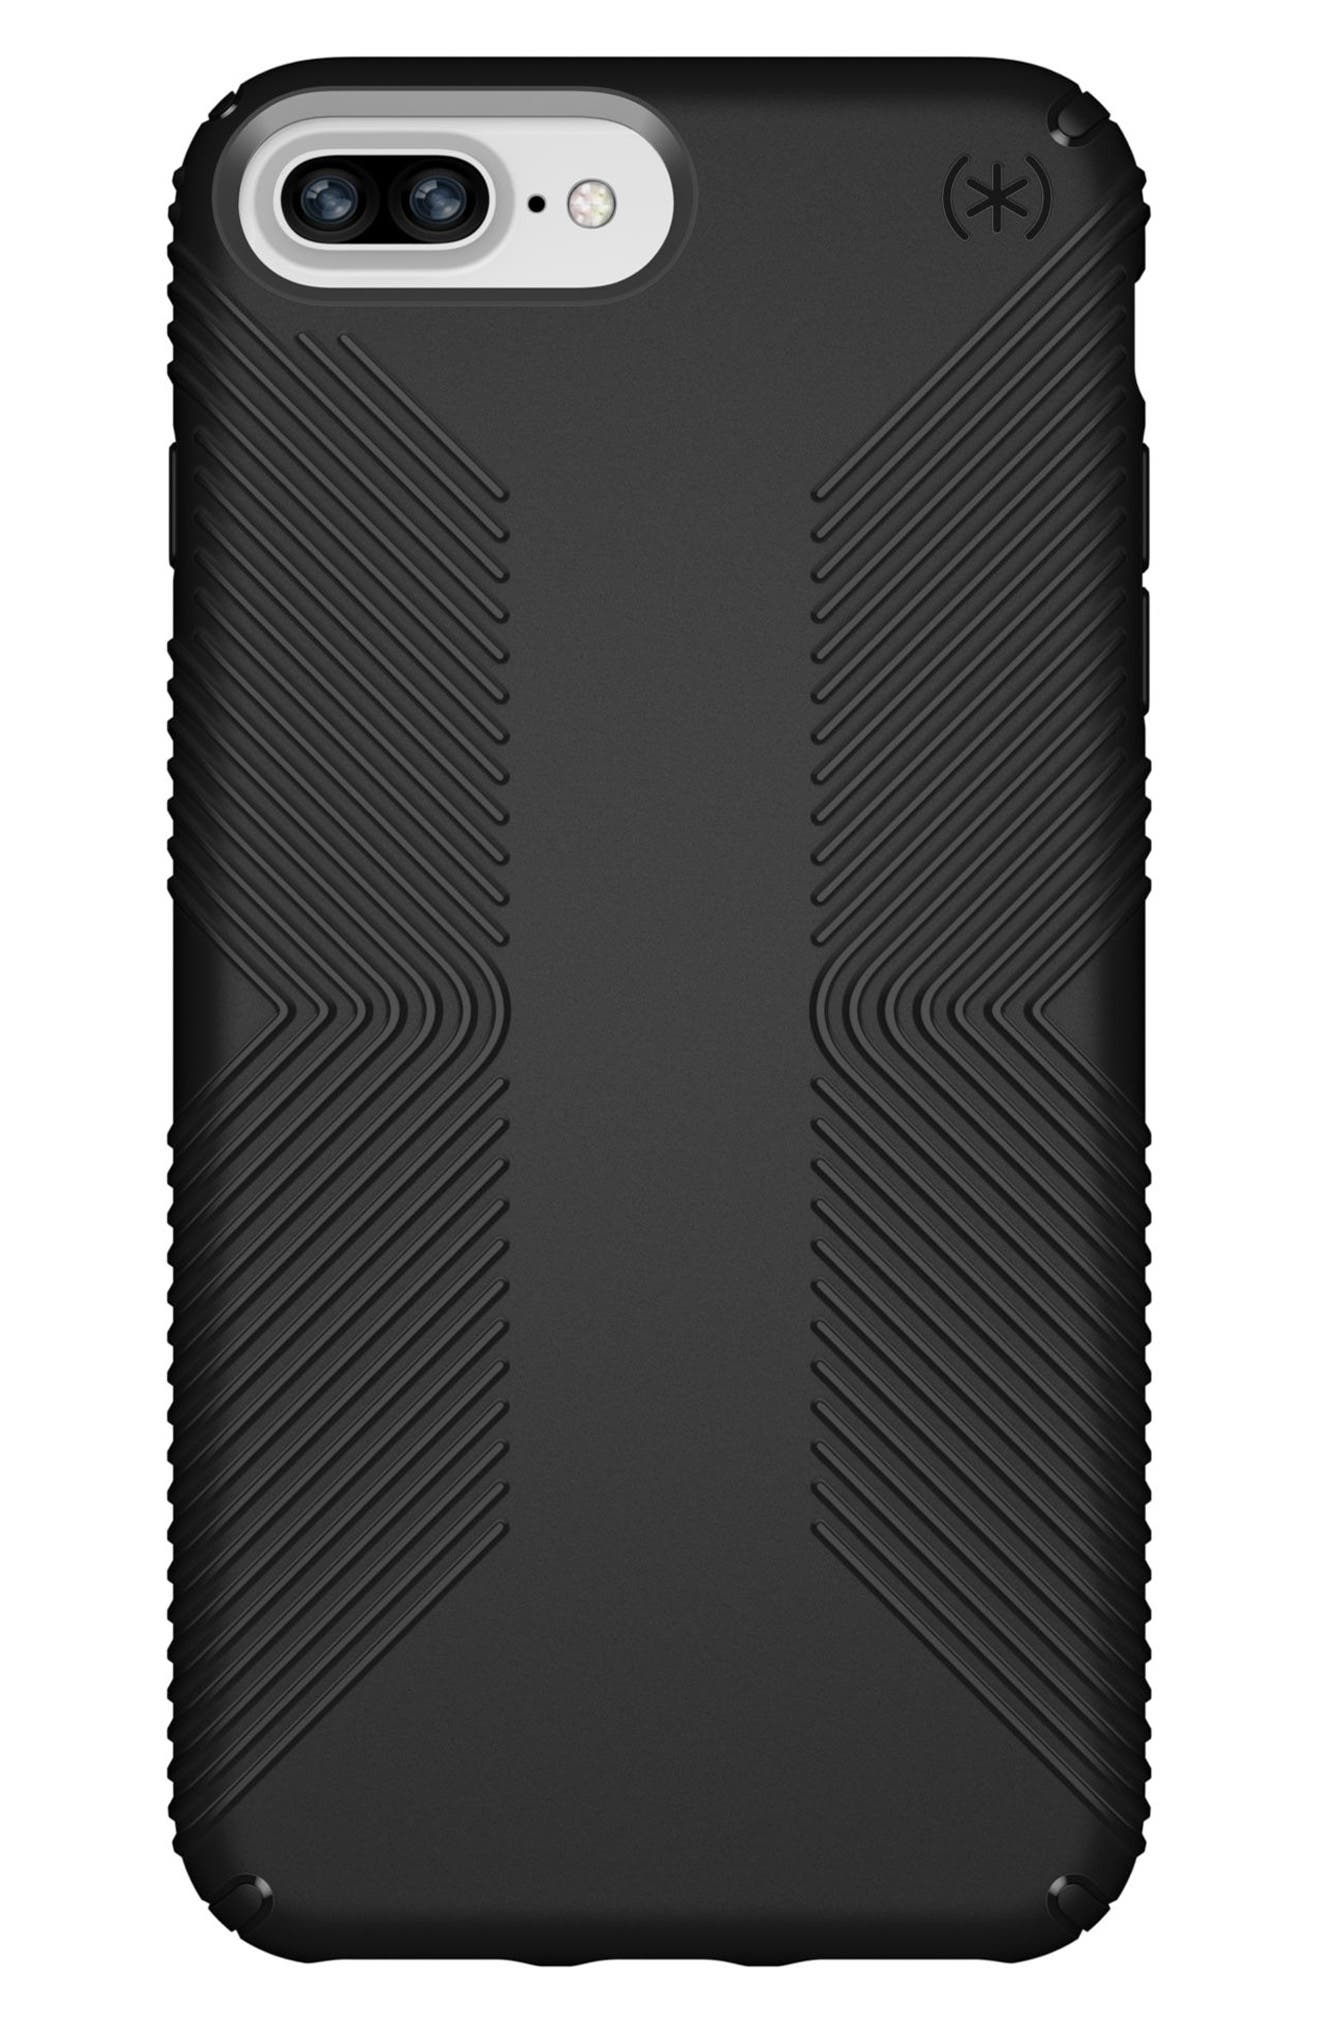 Main Image - Speck Grip iPhone 6/6s/7/8 Plus Case